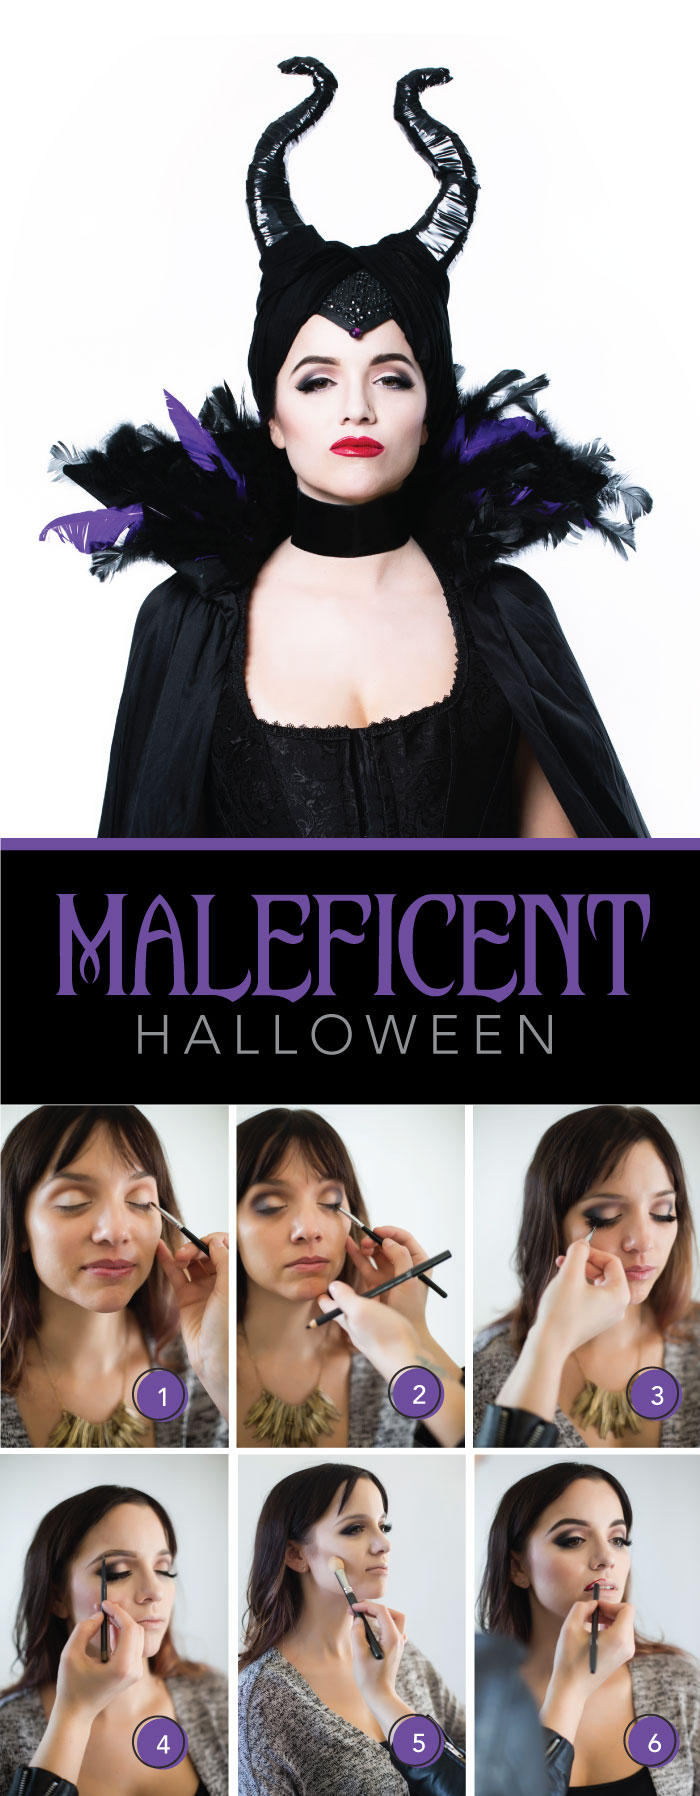 maleficient_how-to2